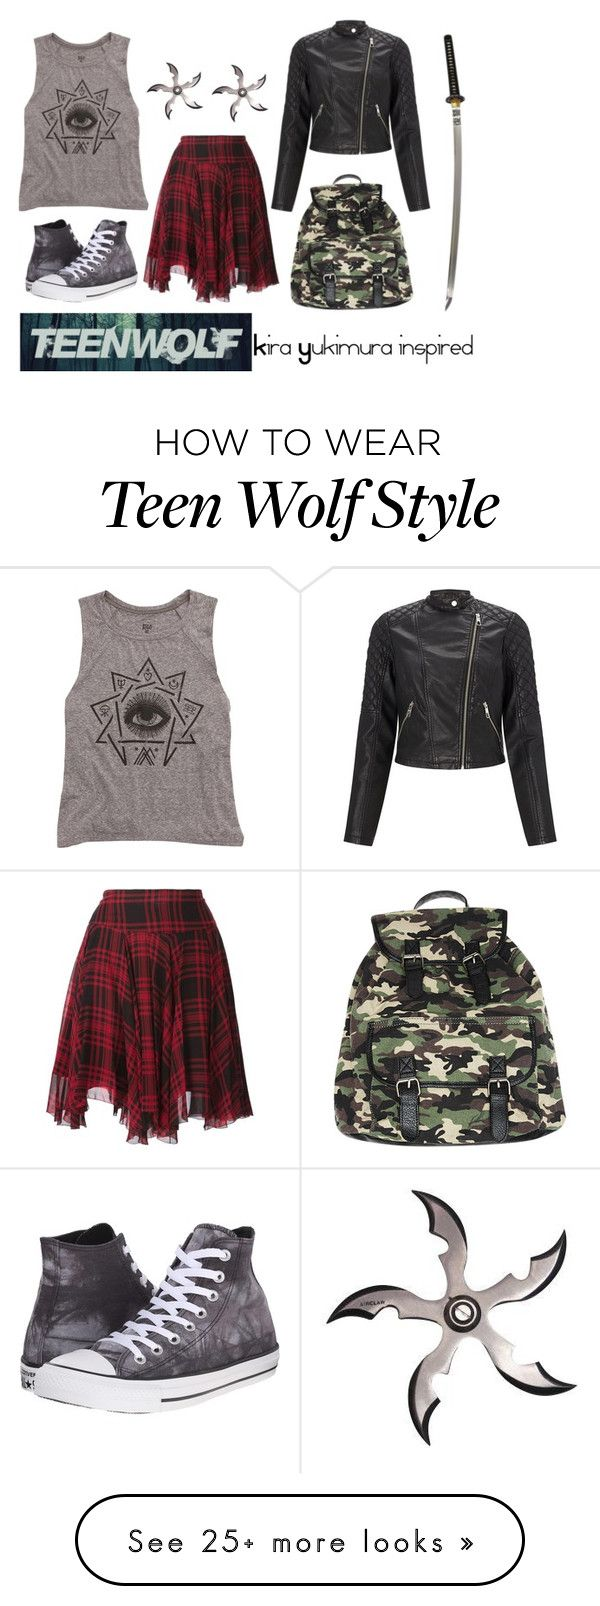 """""""Kira Yukimura inspired outfit // Teen Wolf"""" by misscreepyashell on Polyvore featuring Converse, Billabong, Polo Ralph Lauren, Lipsy and Wet Seal"""